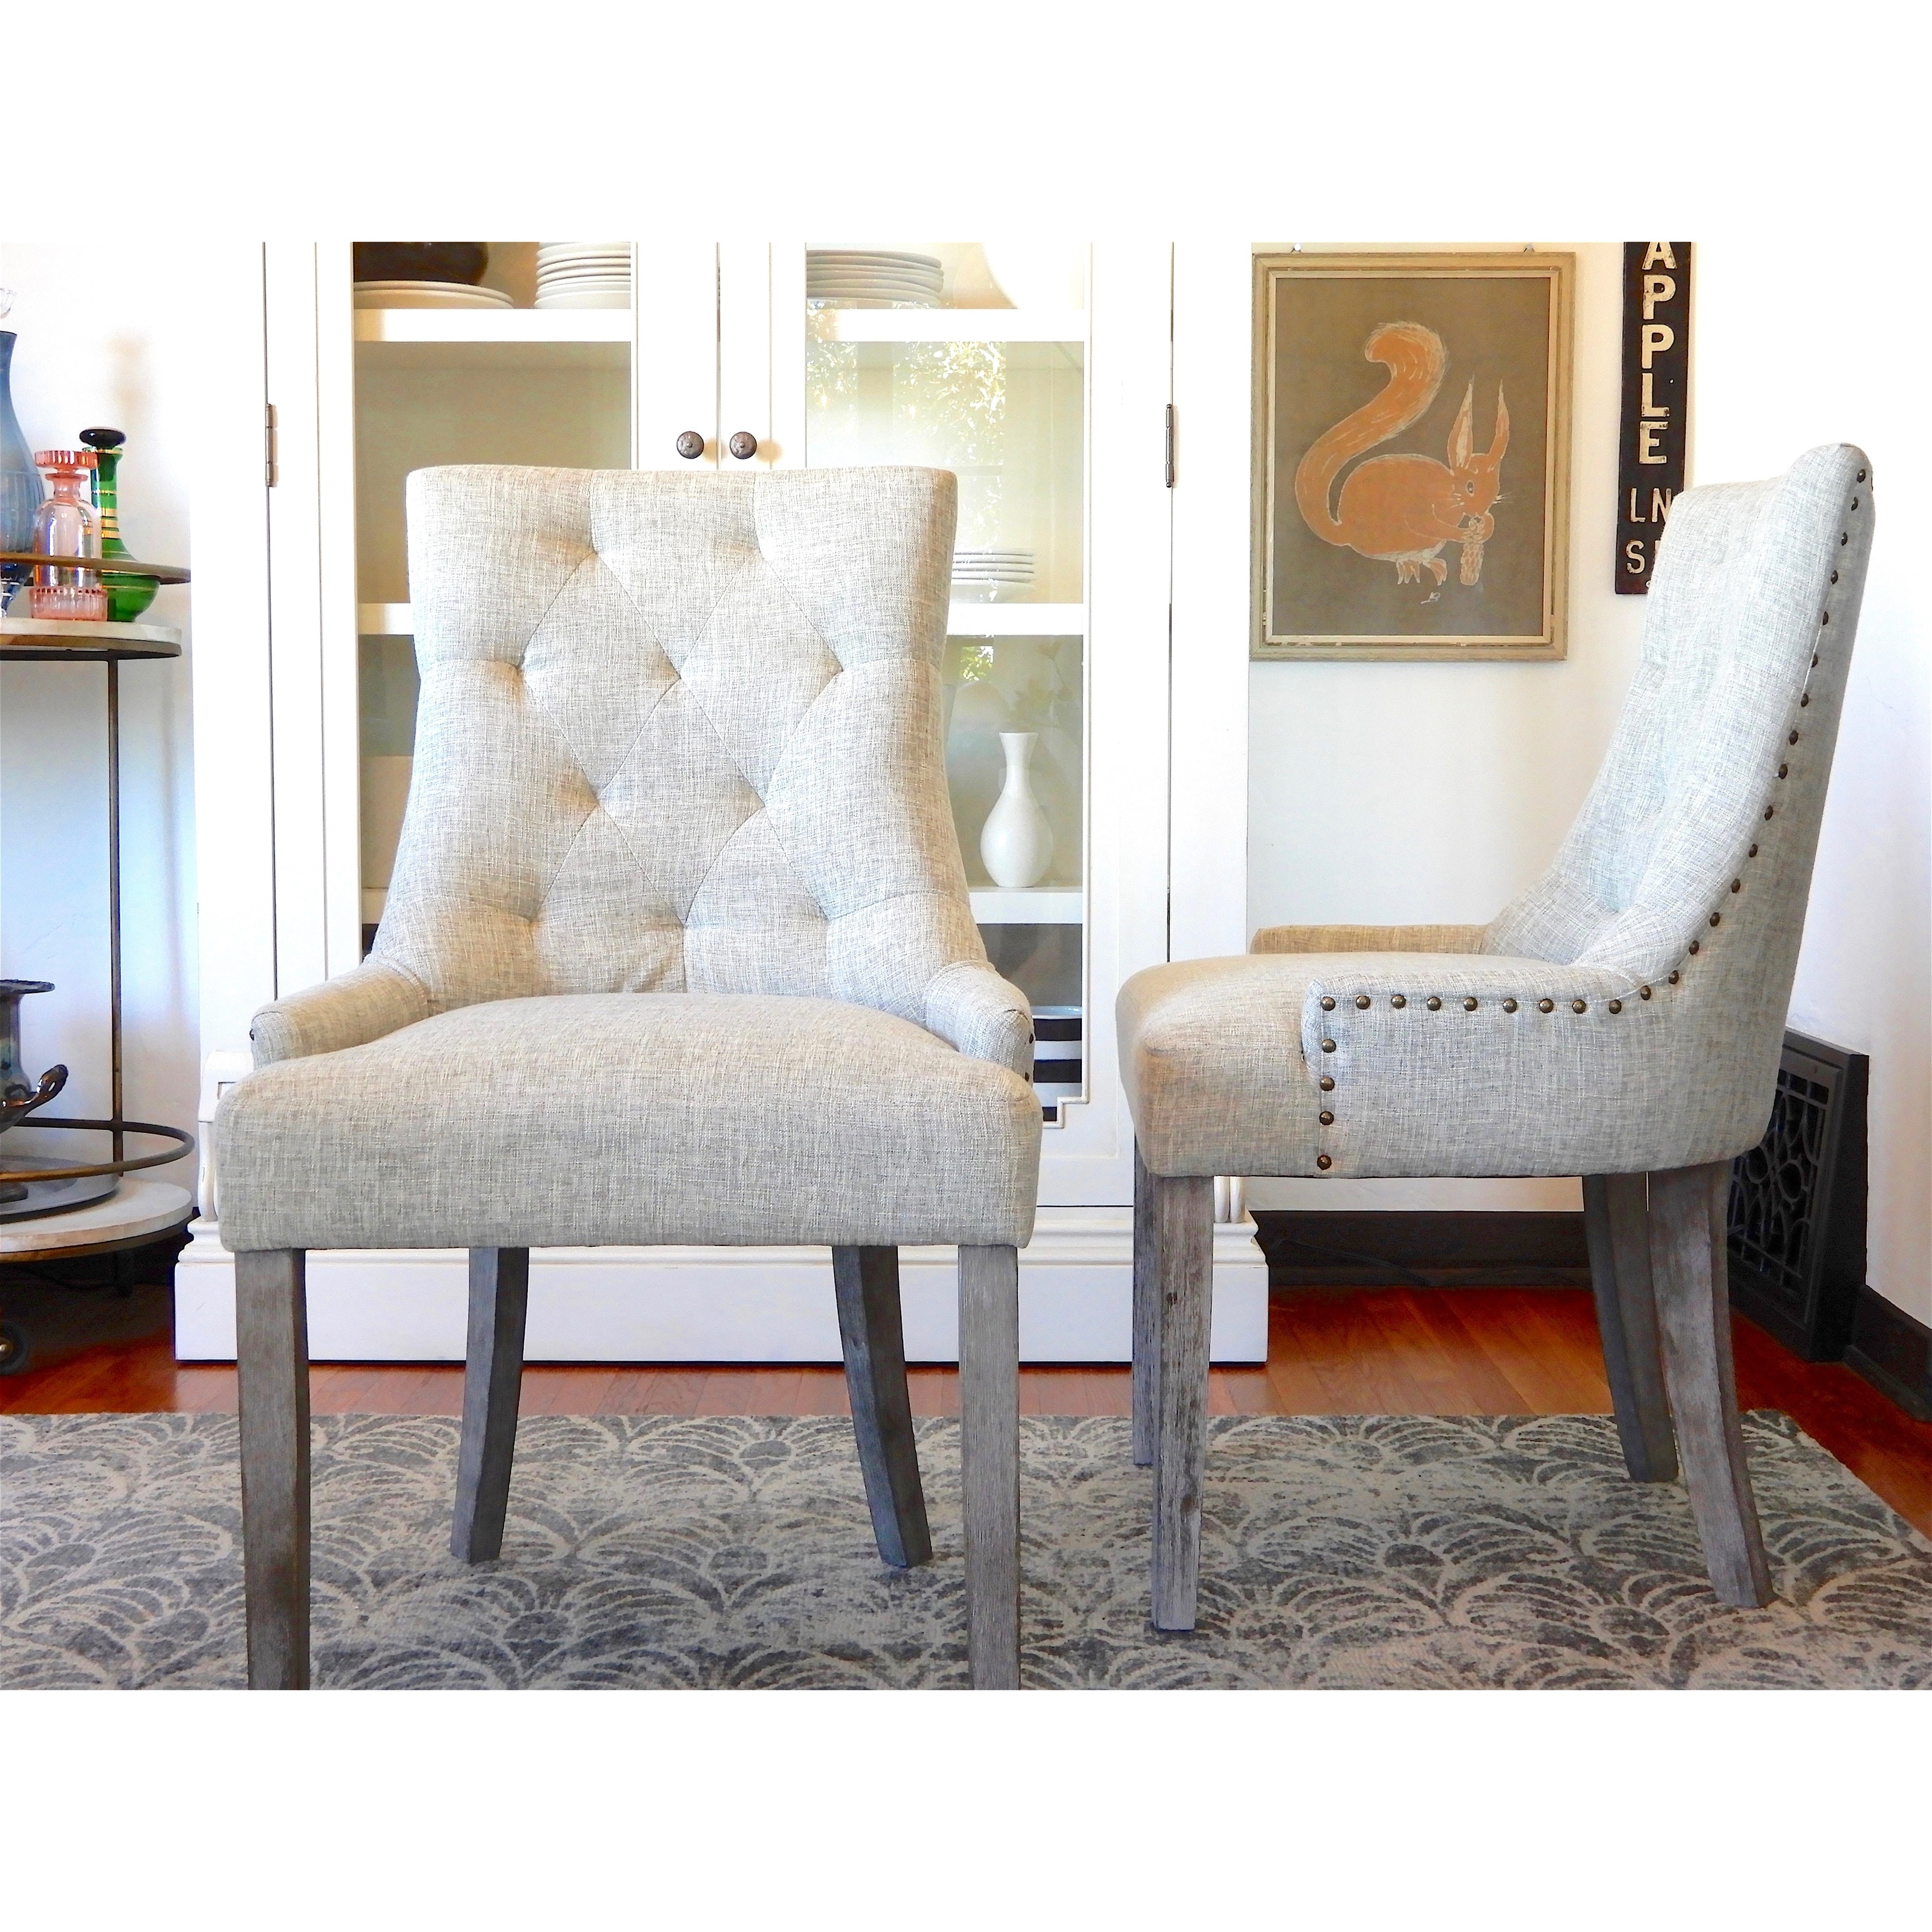 ANGELOHOME Angelo:HOME Ariane Parson Dining Chair (Set Of 2)   N/A